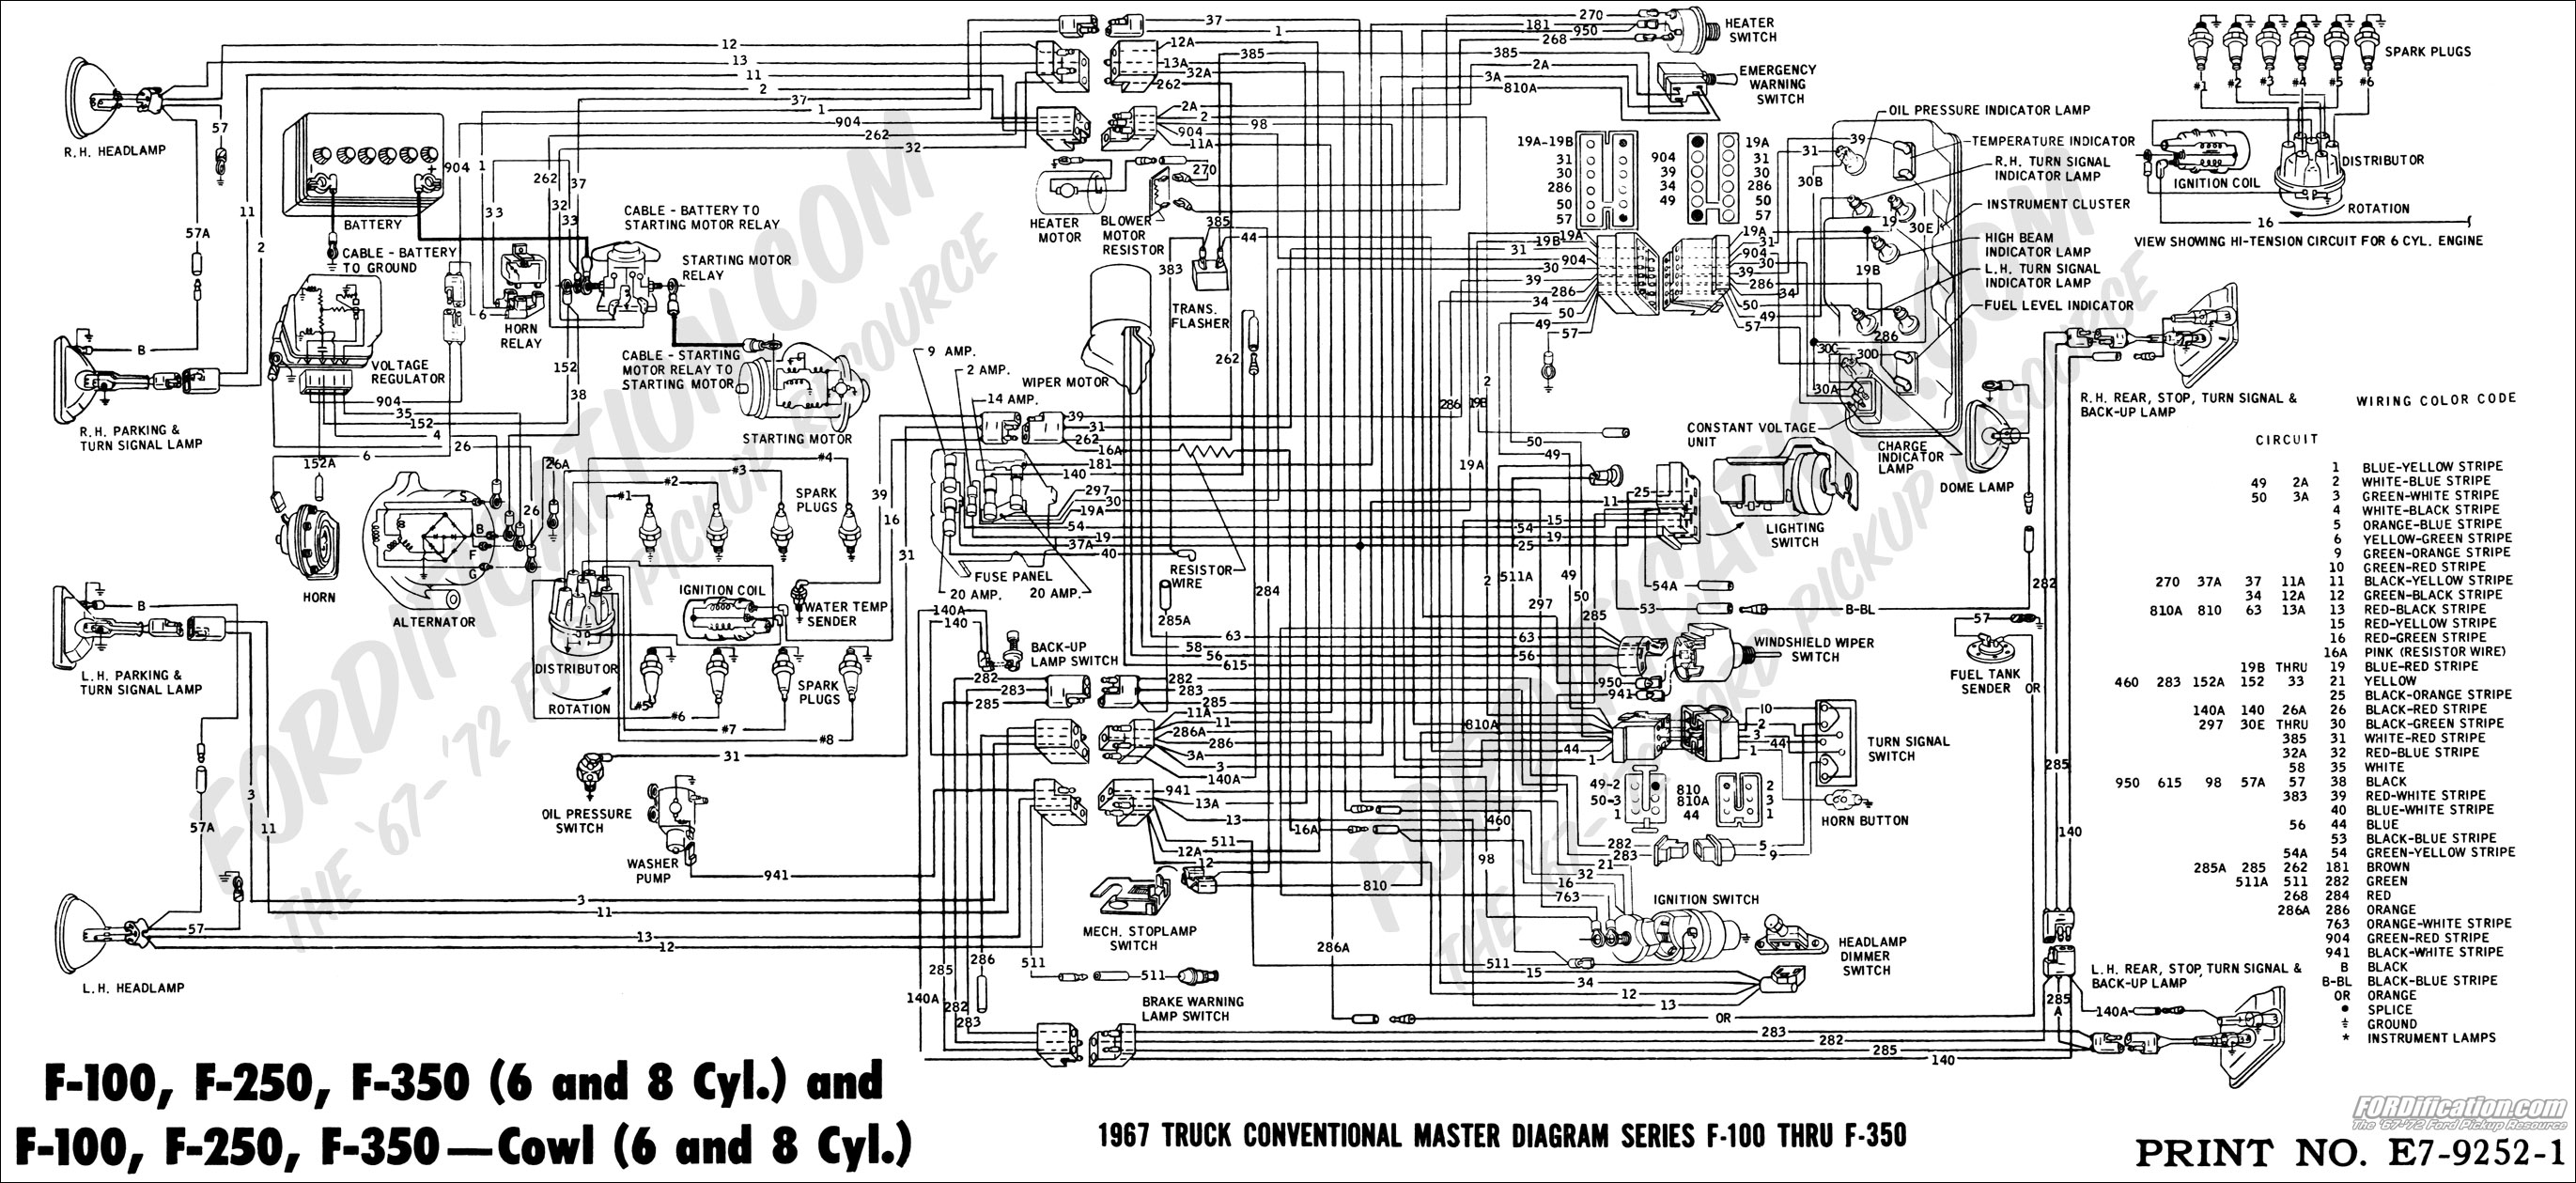 ford aod wiring diagram ford transmission wiring harness diagram ford truck technical drawings and schematics section h wiring 1967 master